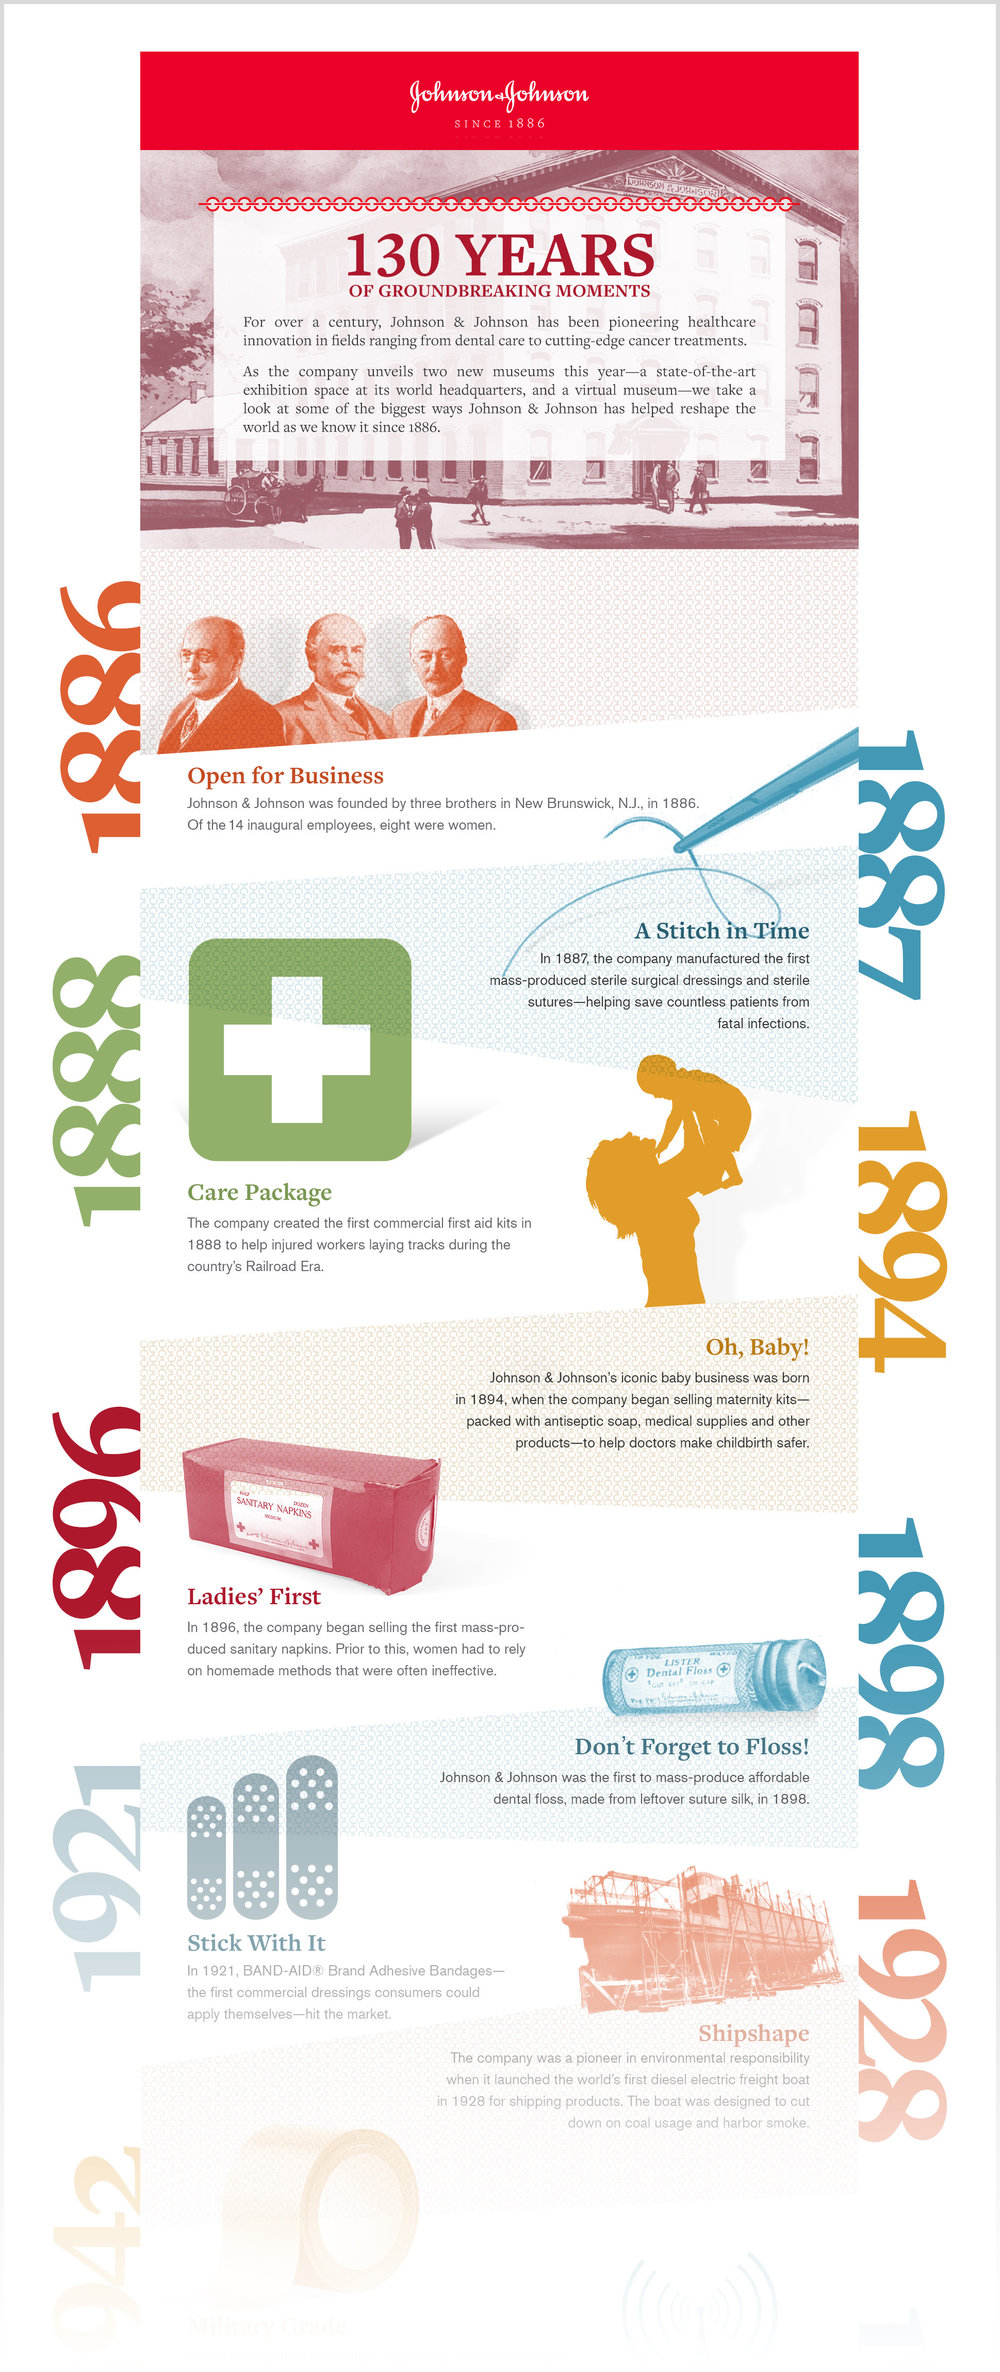 130 Years of GroundBreaking Moments Infographic